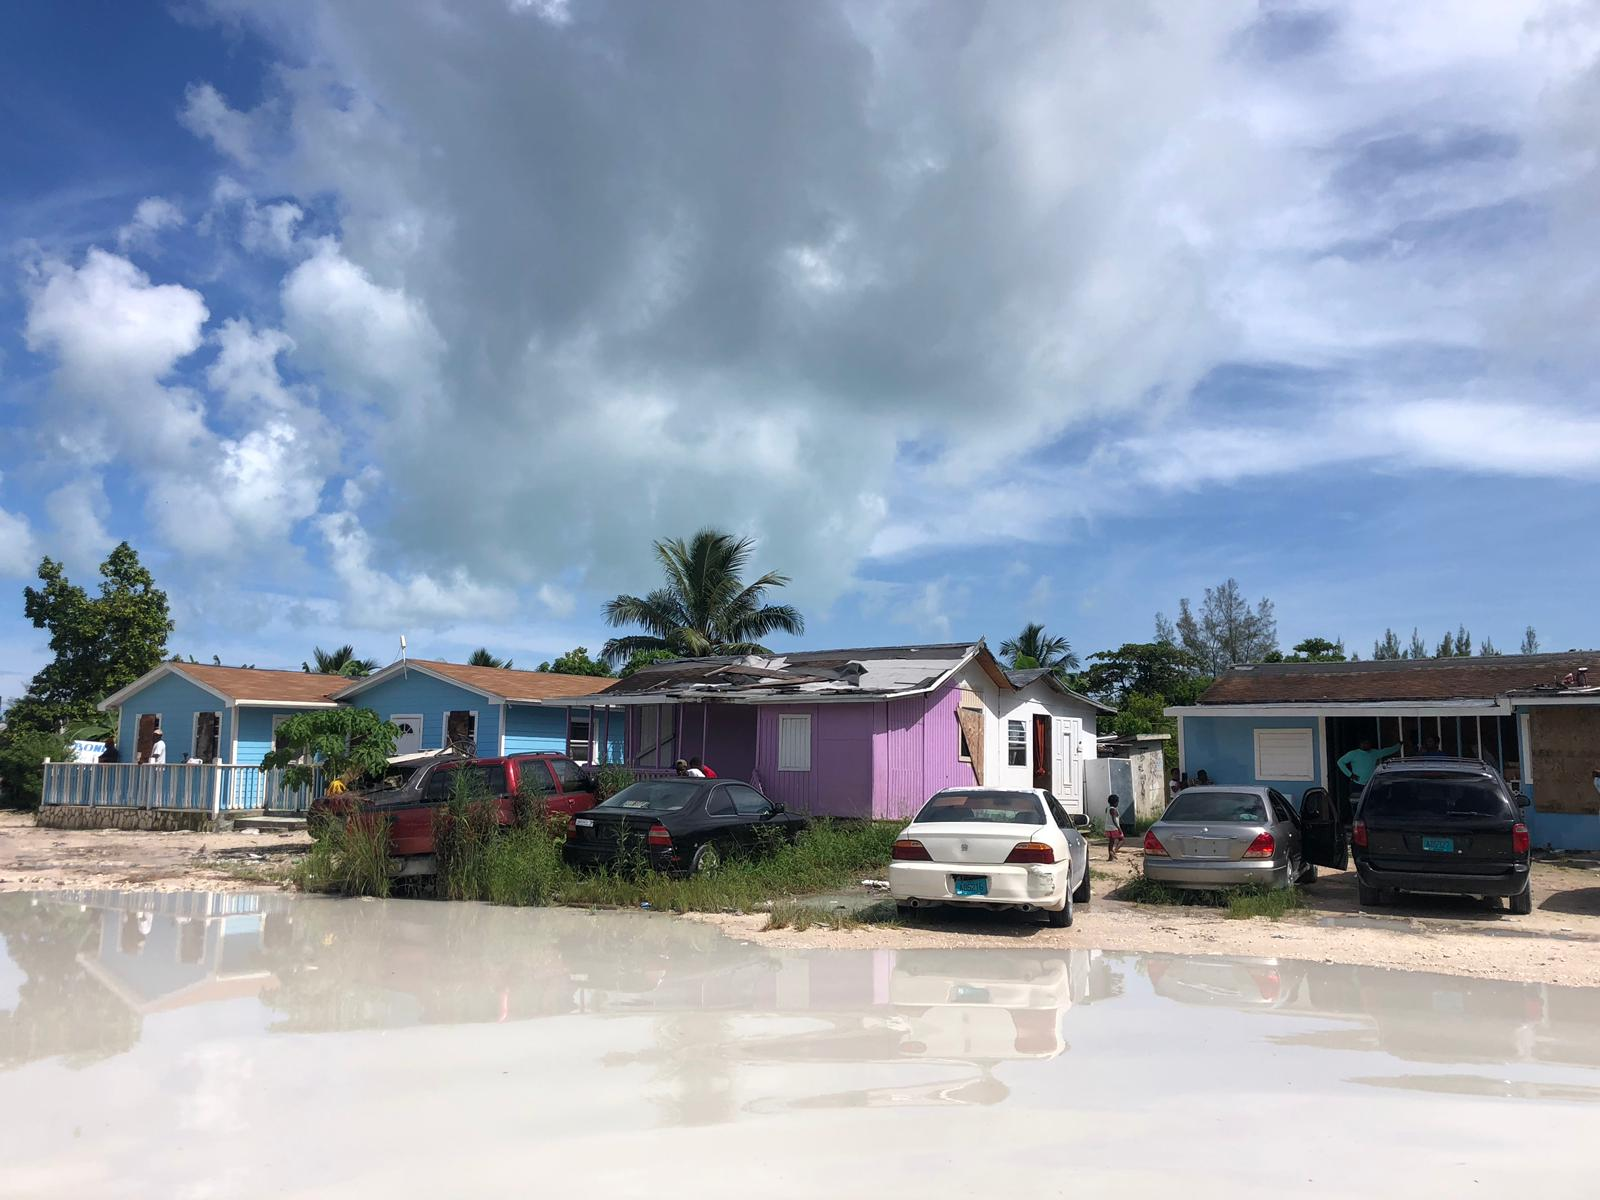 Minnis urging residents in The Mudd to heed evacuation orders